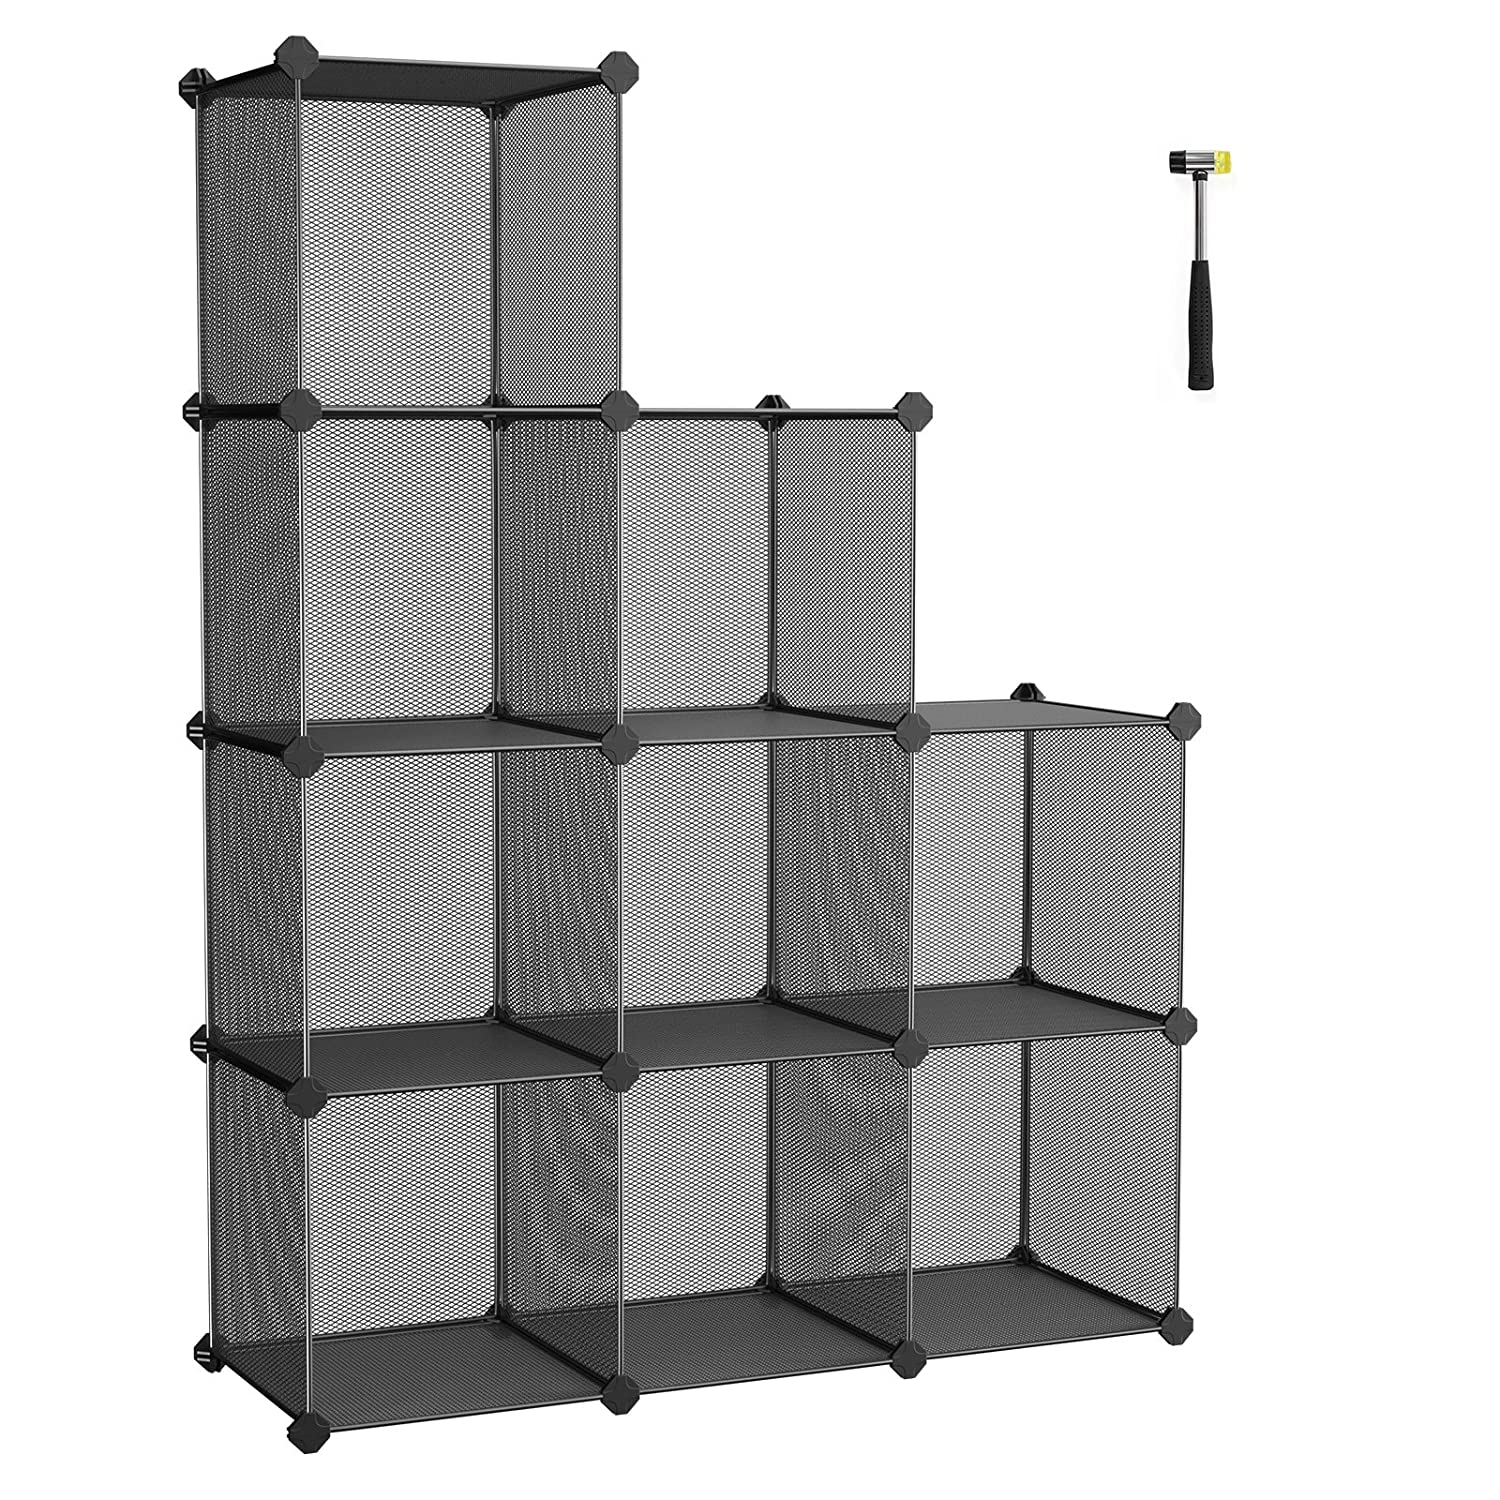 SONGMICS Storage Cubes, High-Density Metal Grid, Interlocking Shelving Organizer Unit with High Load Capacity for Closet, DIY Cabinet and Bookcase with Rubber Mallet, Black ULPL115H